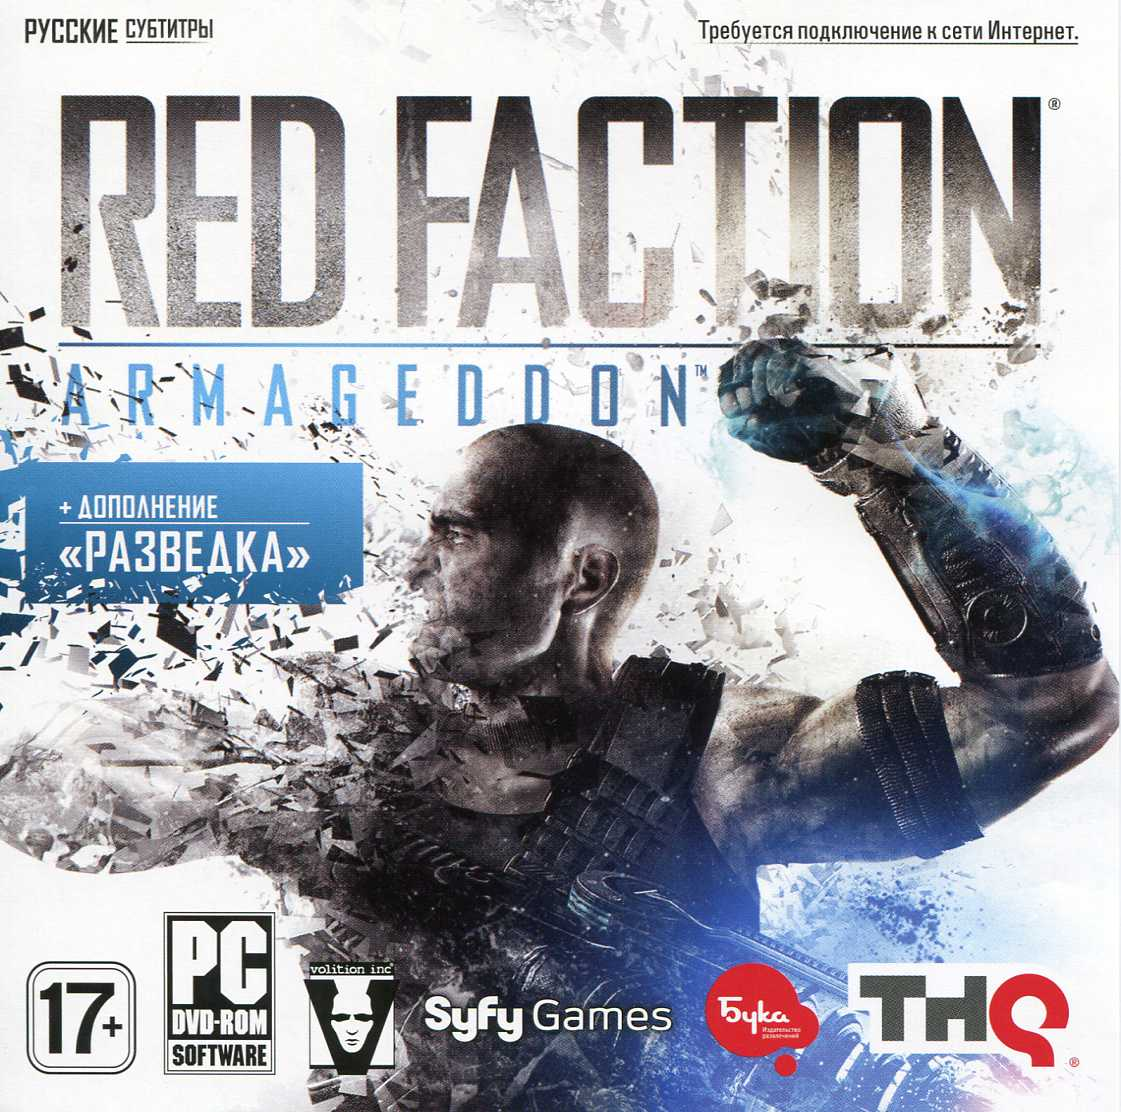 RED FACTION: ARMAGEDDON CDKEY + DLC - STEAM - BUKA